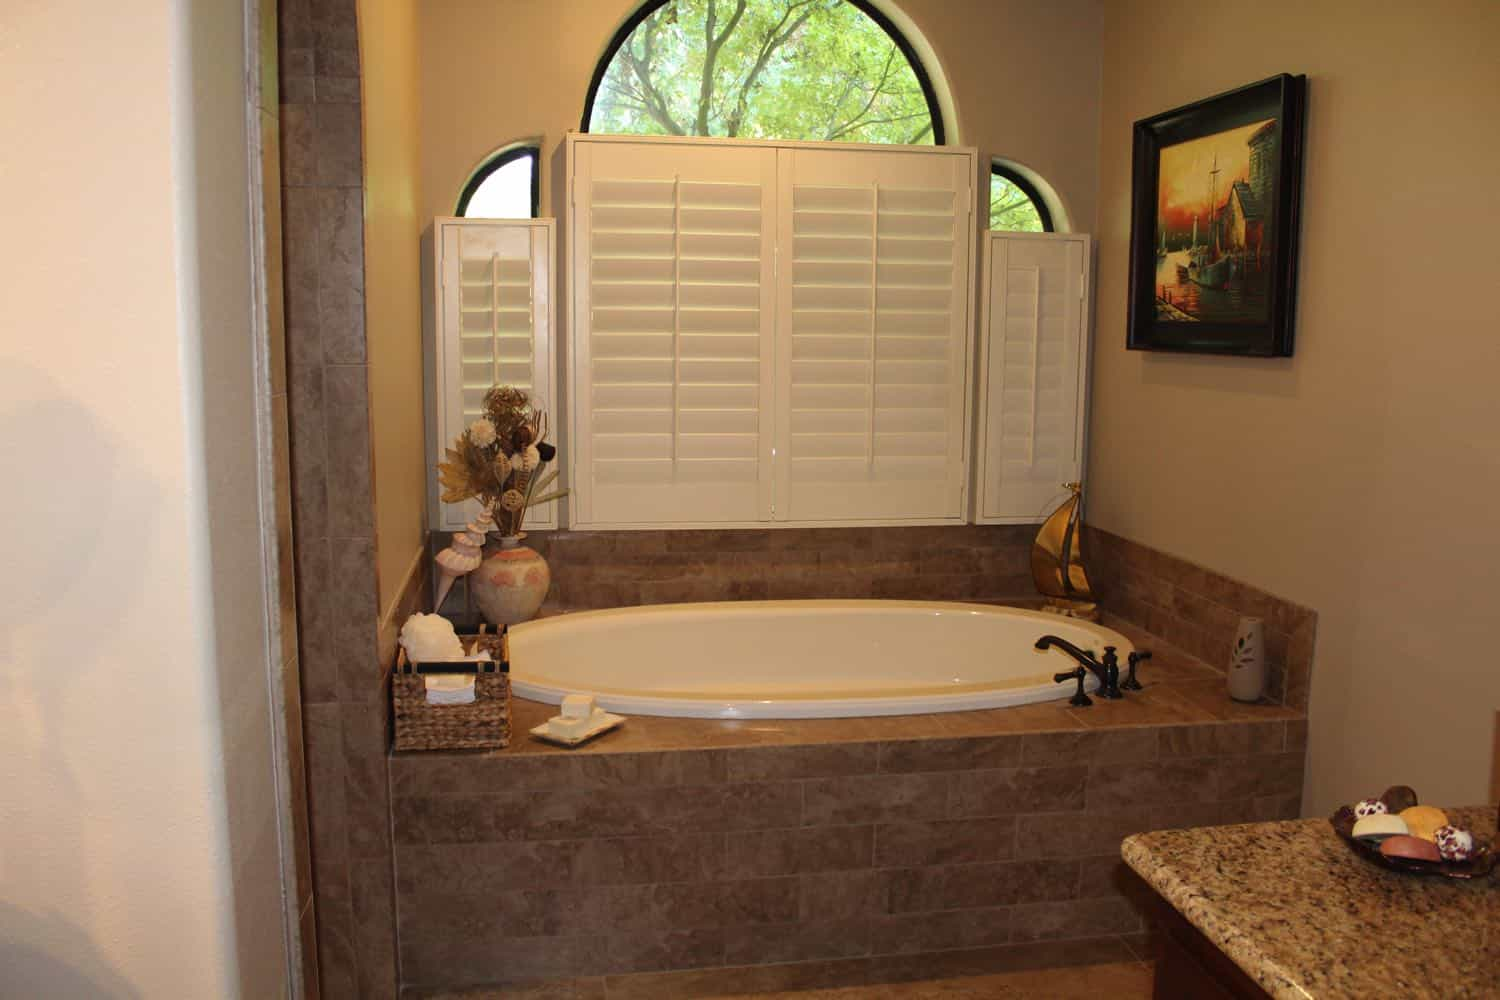 bathroom remodeling contractor. Tips For Renovating Your Bathroom Remodeling Contractor